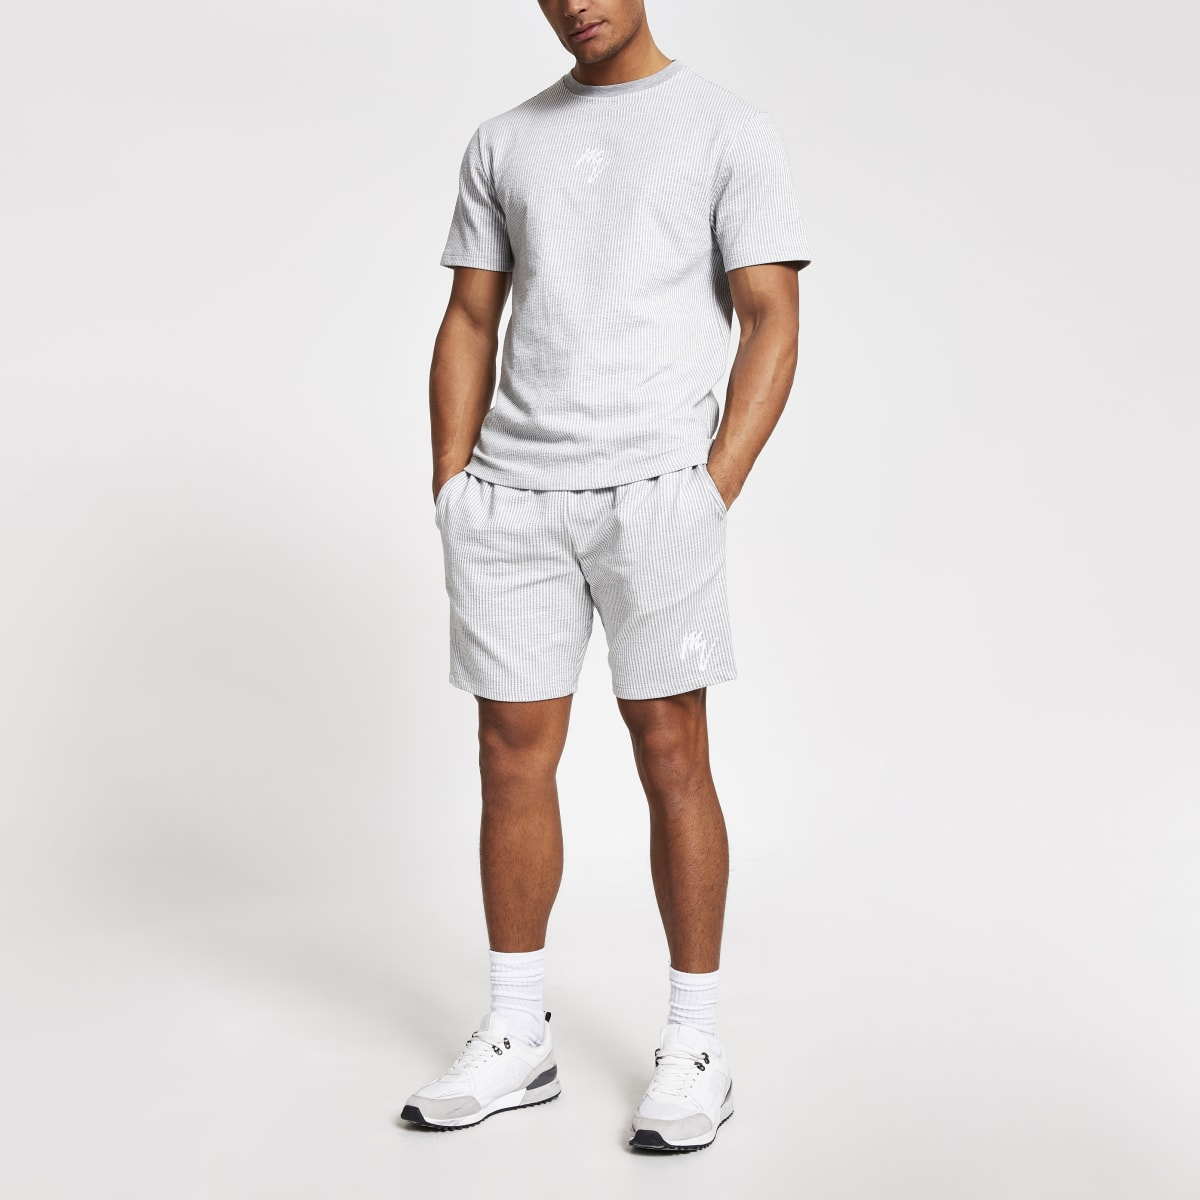 Maison Riviera grey stripe slim fit shorts